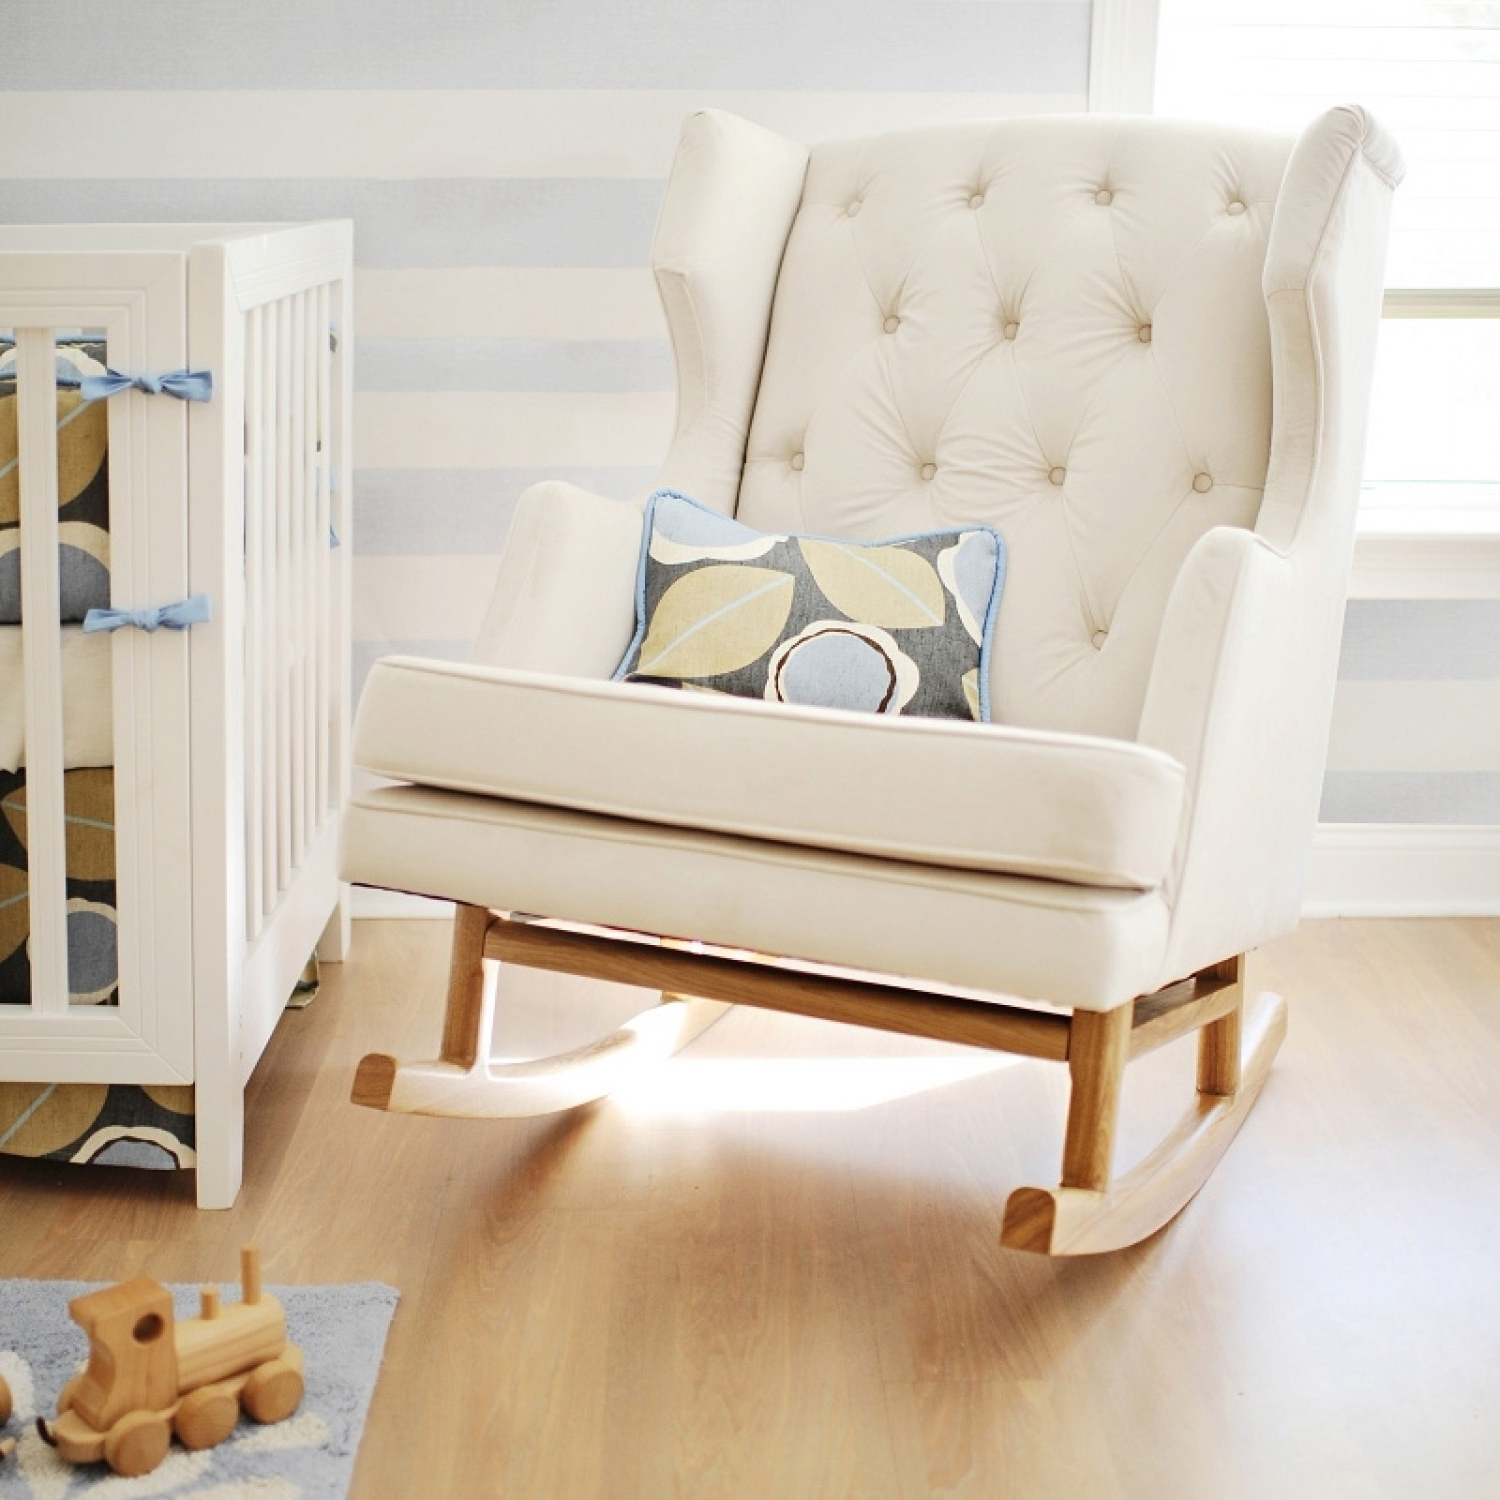 Well Known White Wicker Rocking Chair For Nursery Within Bedroom : Furniture Traditional Bedroom Chair Magnificent Wicker (View 10 of 20)